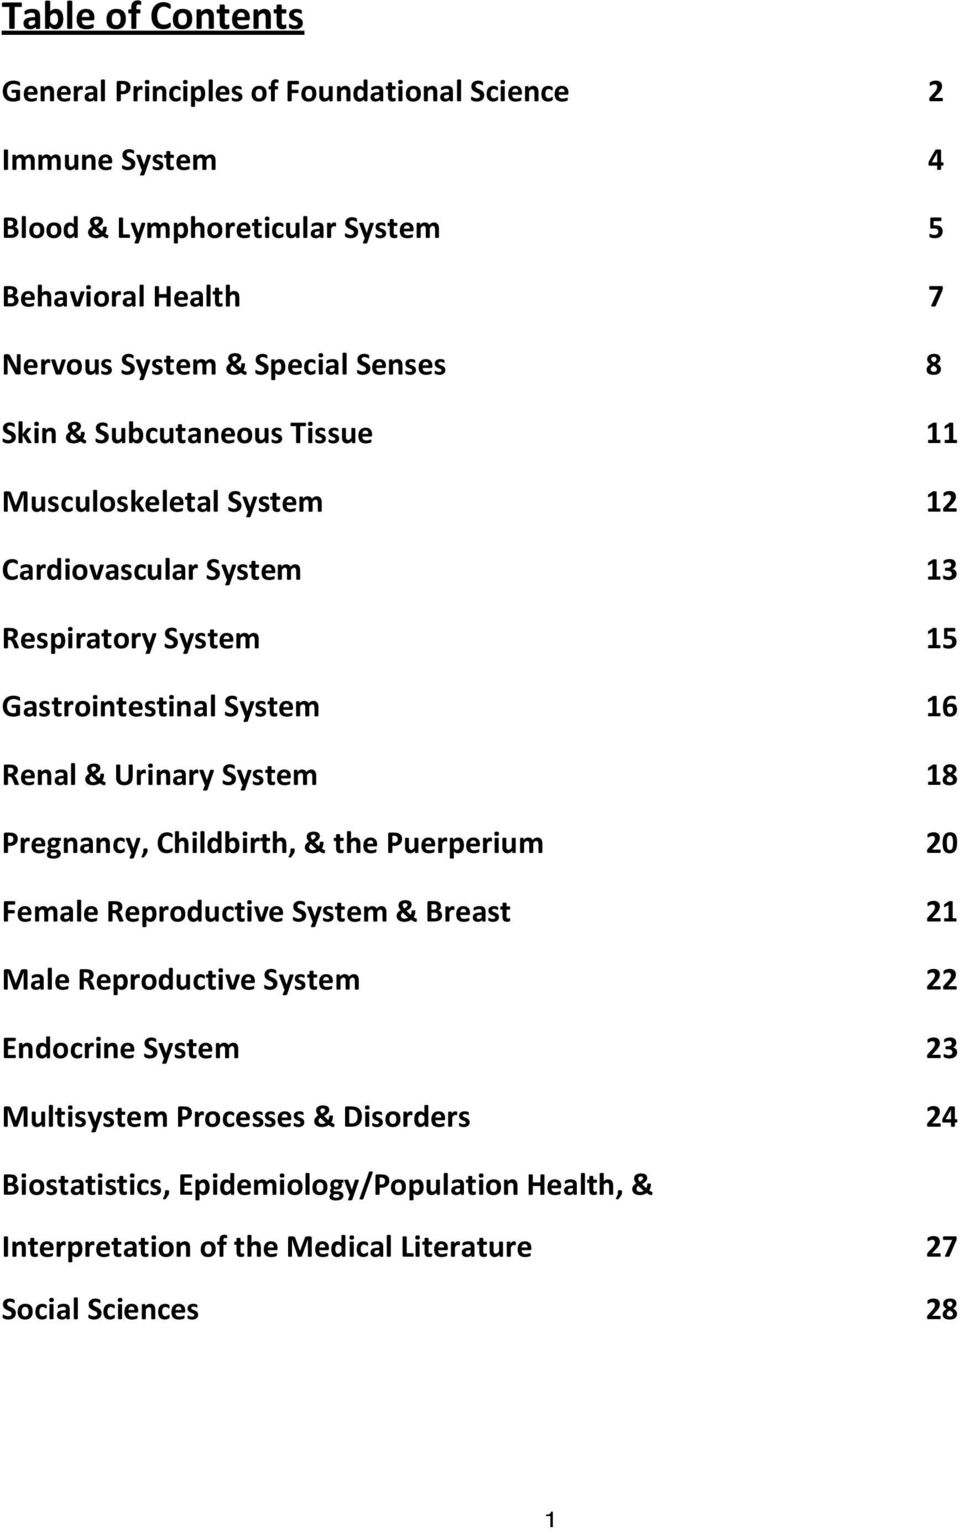 Renal & Urinary System 18 Pregnancy, Childbirth, & the Puerperium 20 Female Reproductive System & Breast 21 Male Reproductive System 22 Endocrine